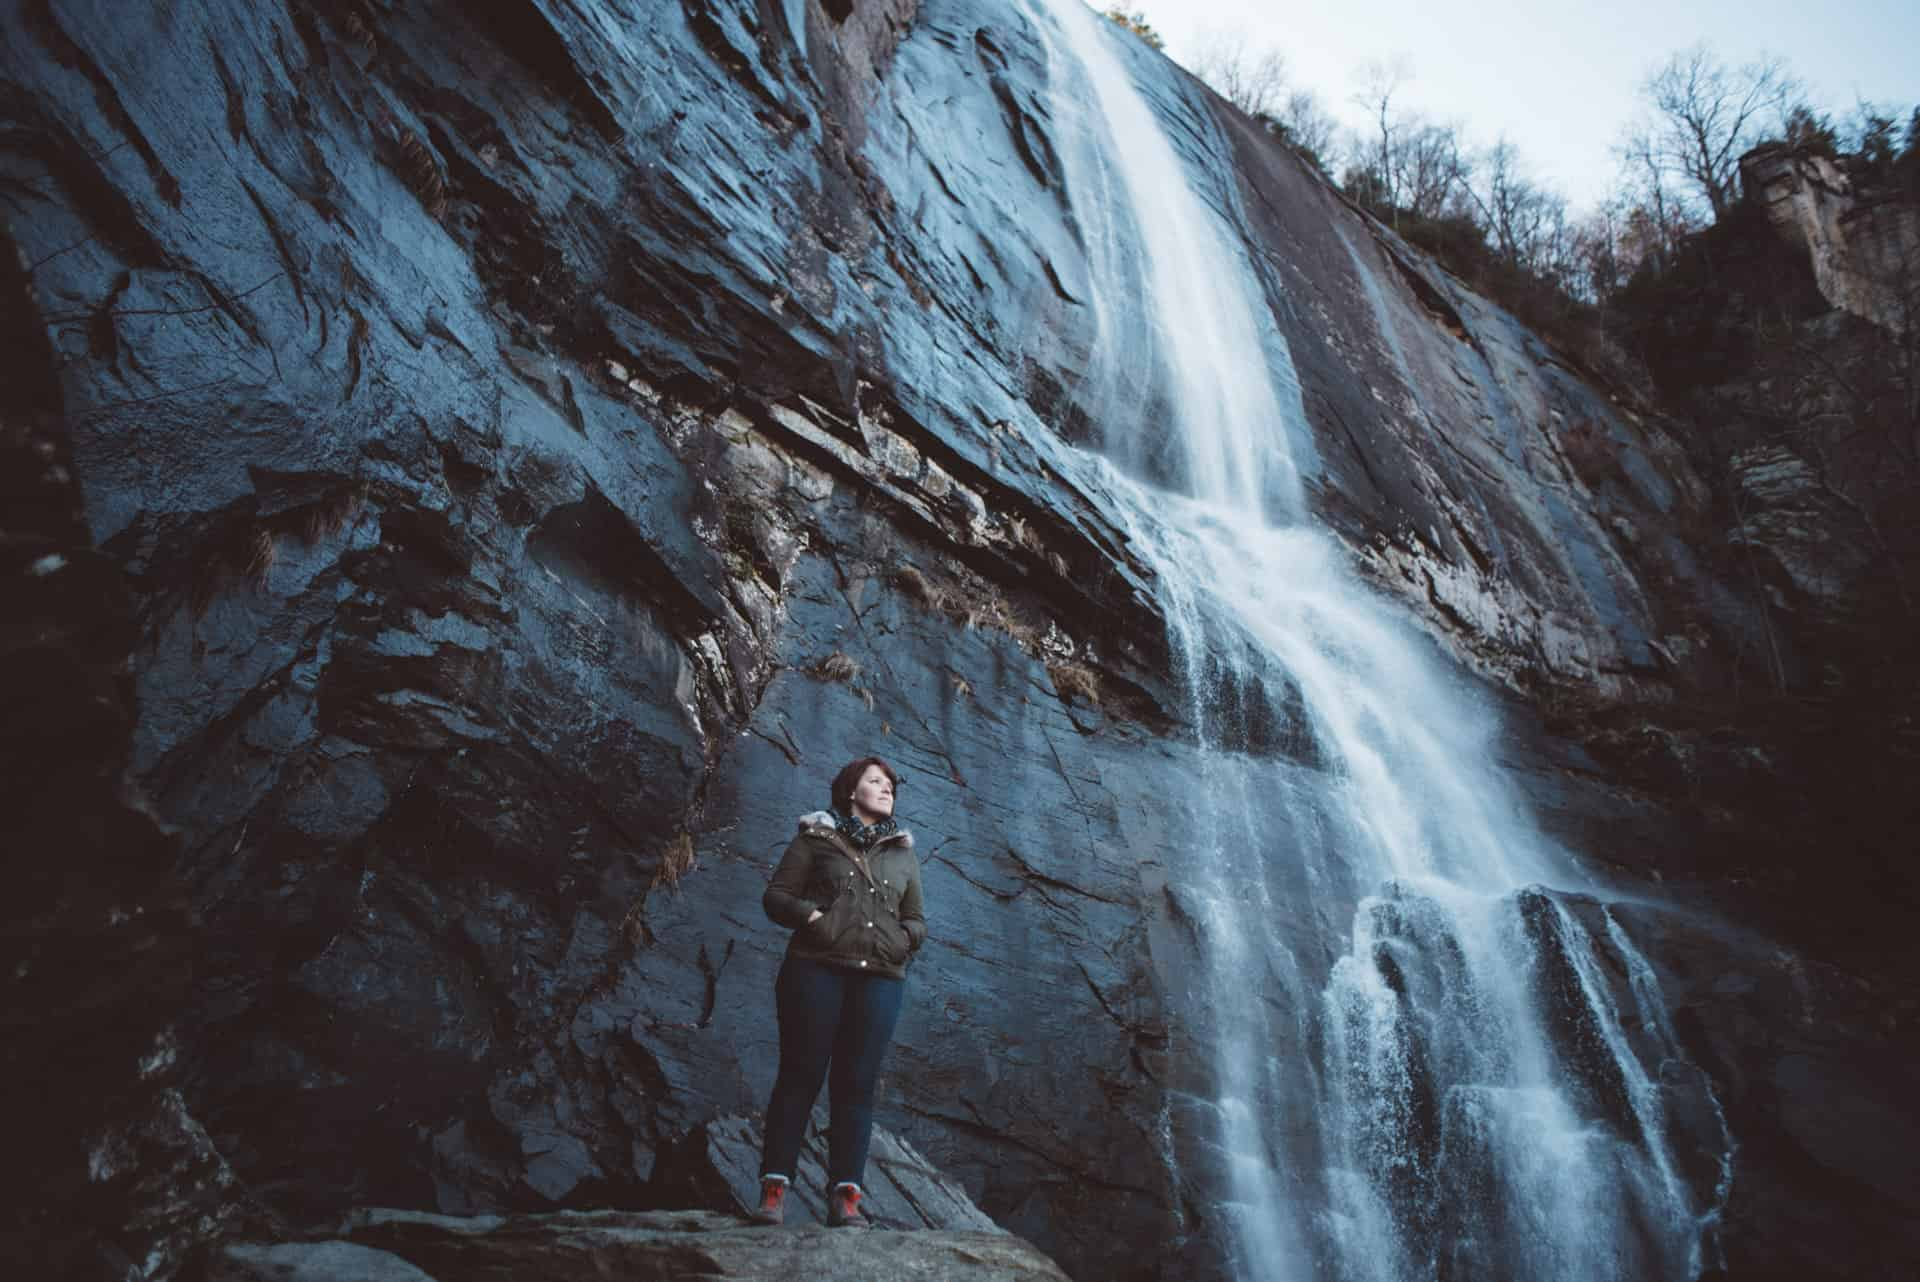 Hickory Nut falls photographer